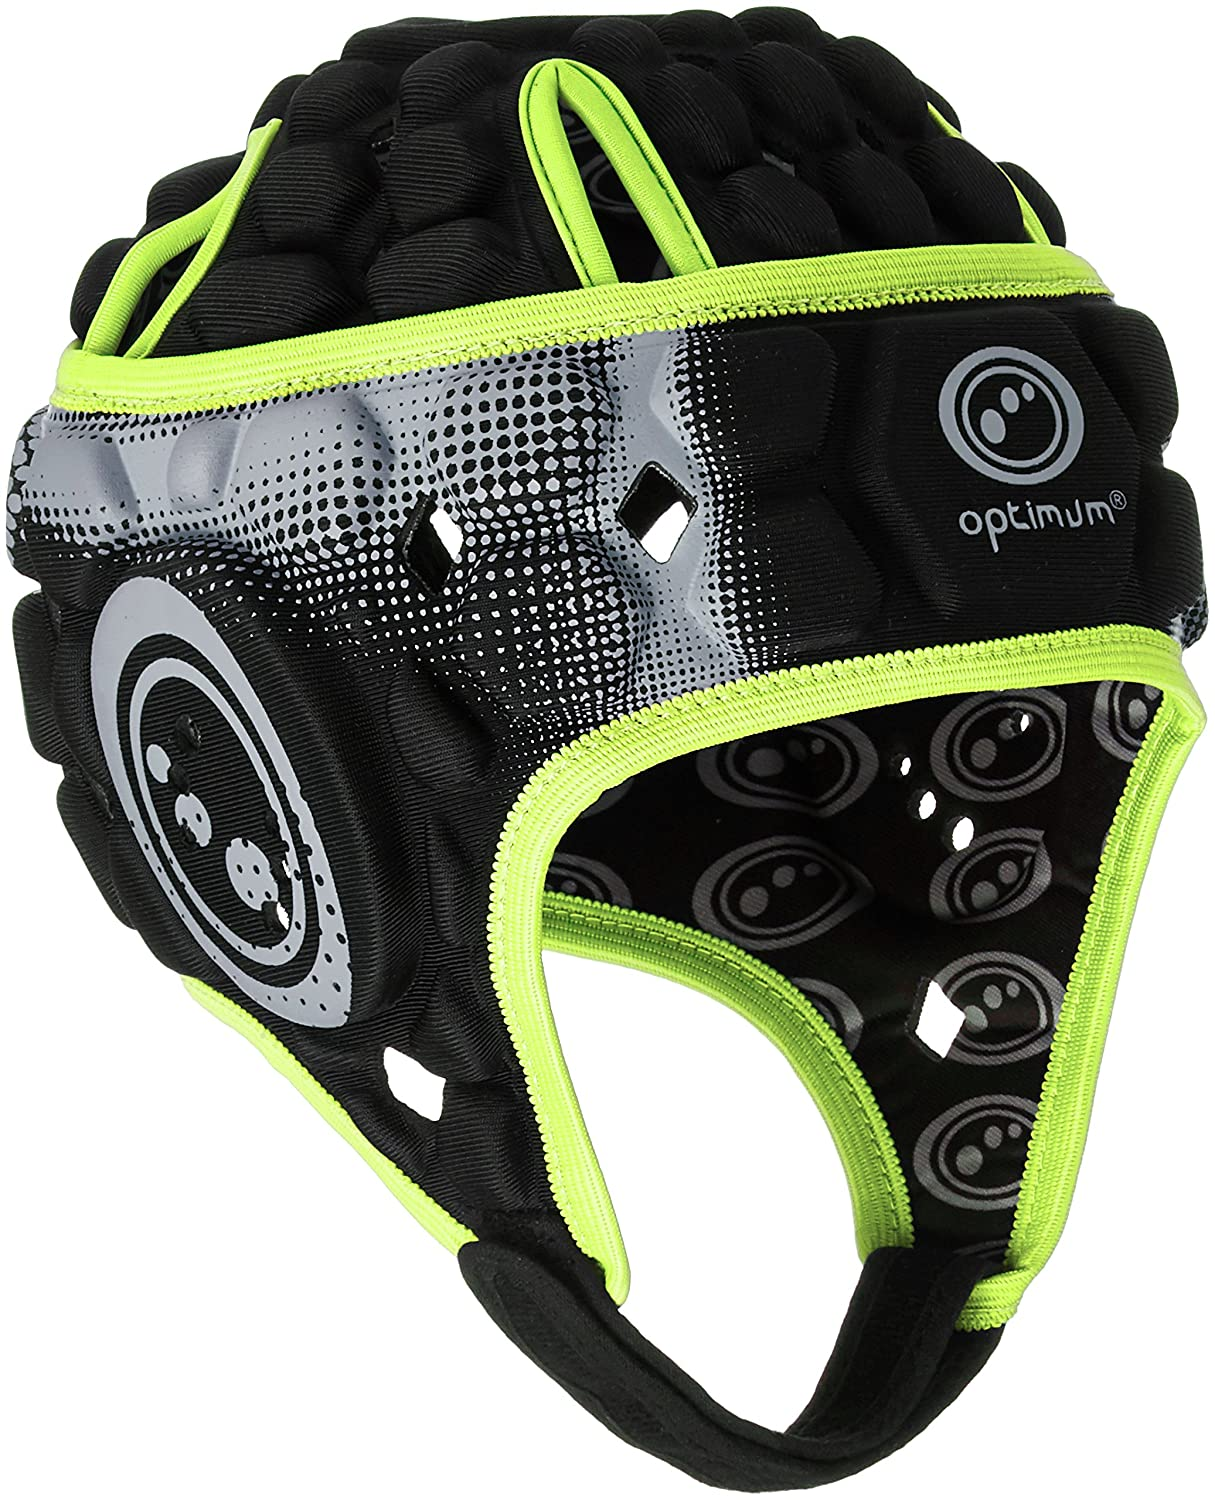 OPTIMUM Atomic Casco de Rugby